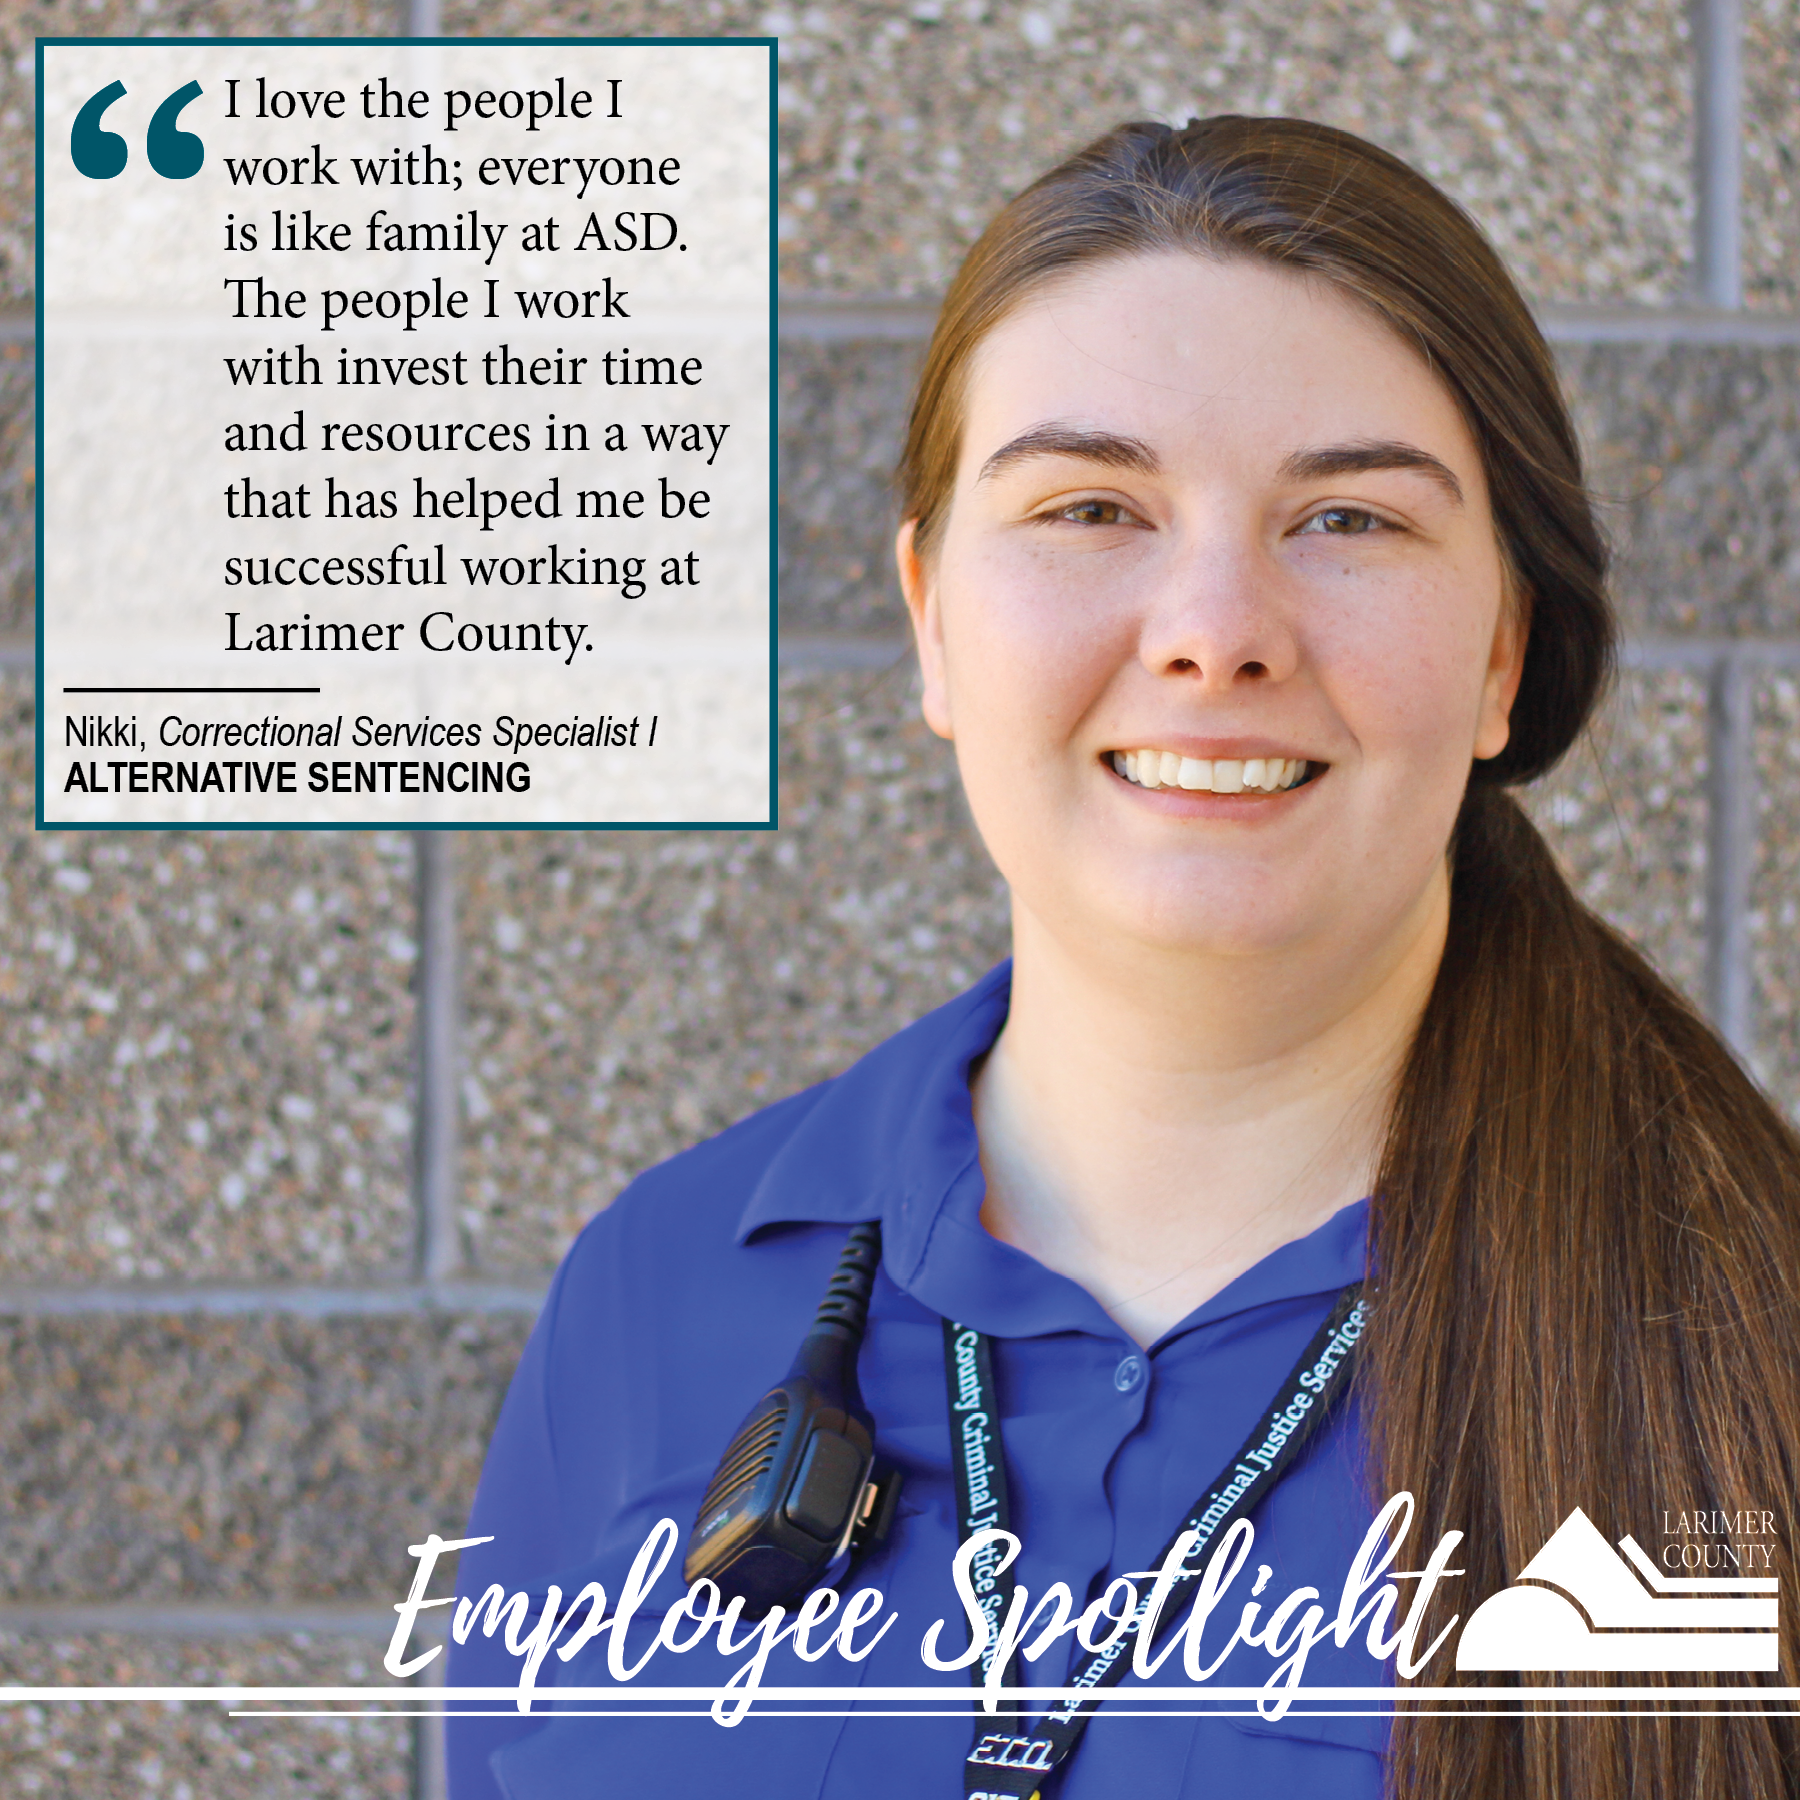 "Image 1: ""I love the people I work with; everyone is like family at ASD. The people I work with invest their time and resources in a way that has helped me be successful working at Larimer County."""